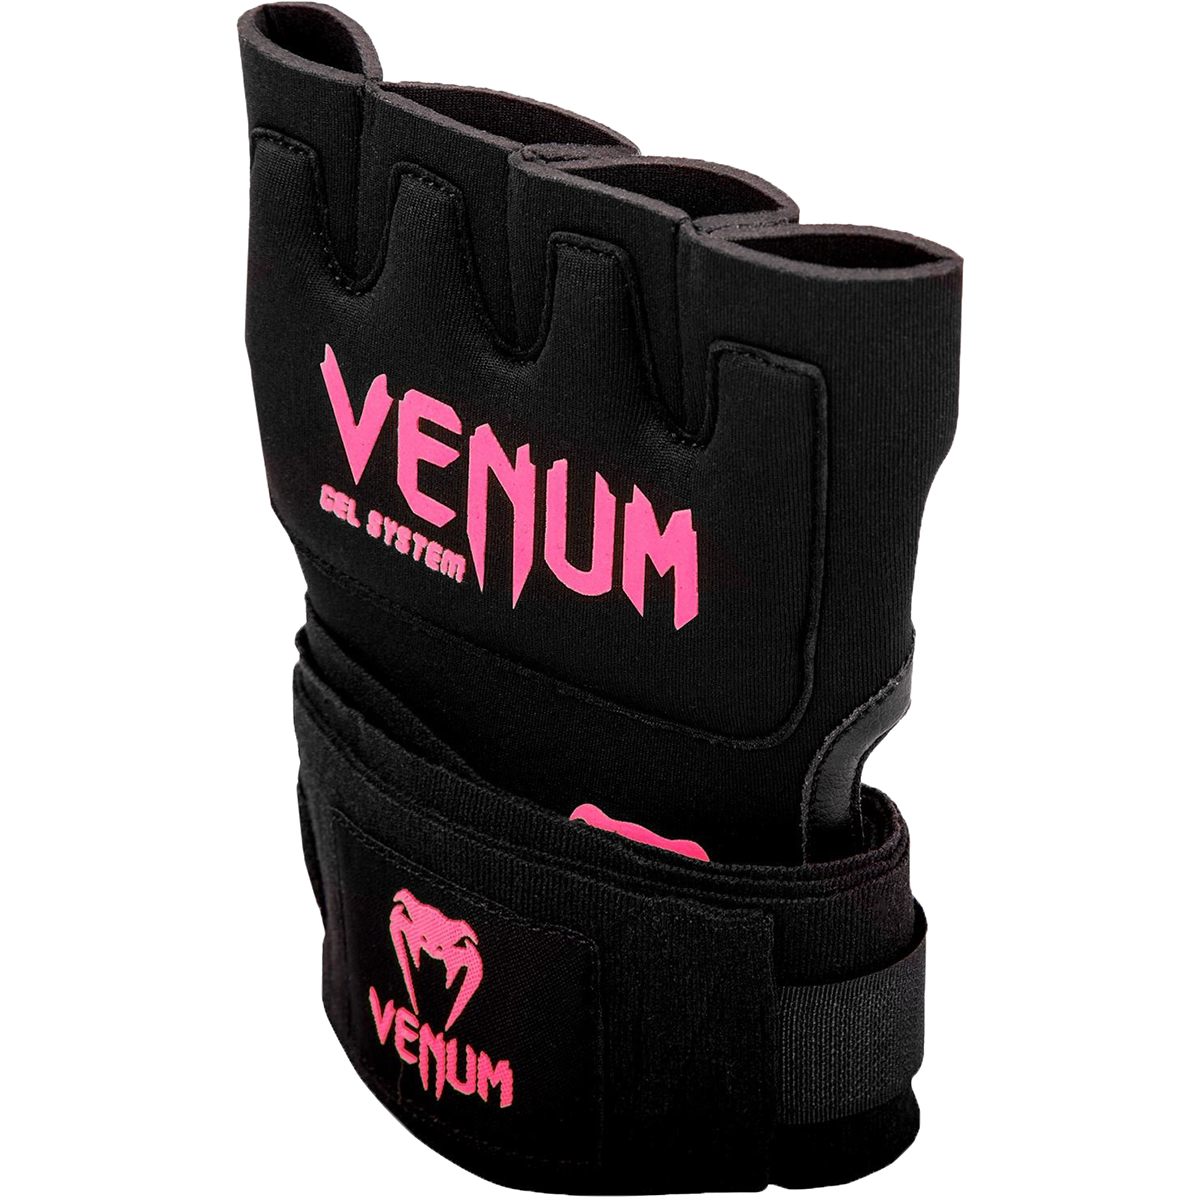 Venum-Kontact-Protective-Shock-Absorbing-Gel-MMA-Glove-Wraps thumbnail 30